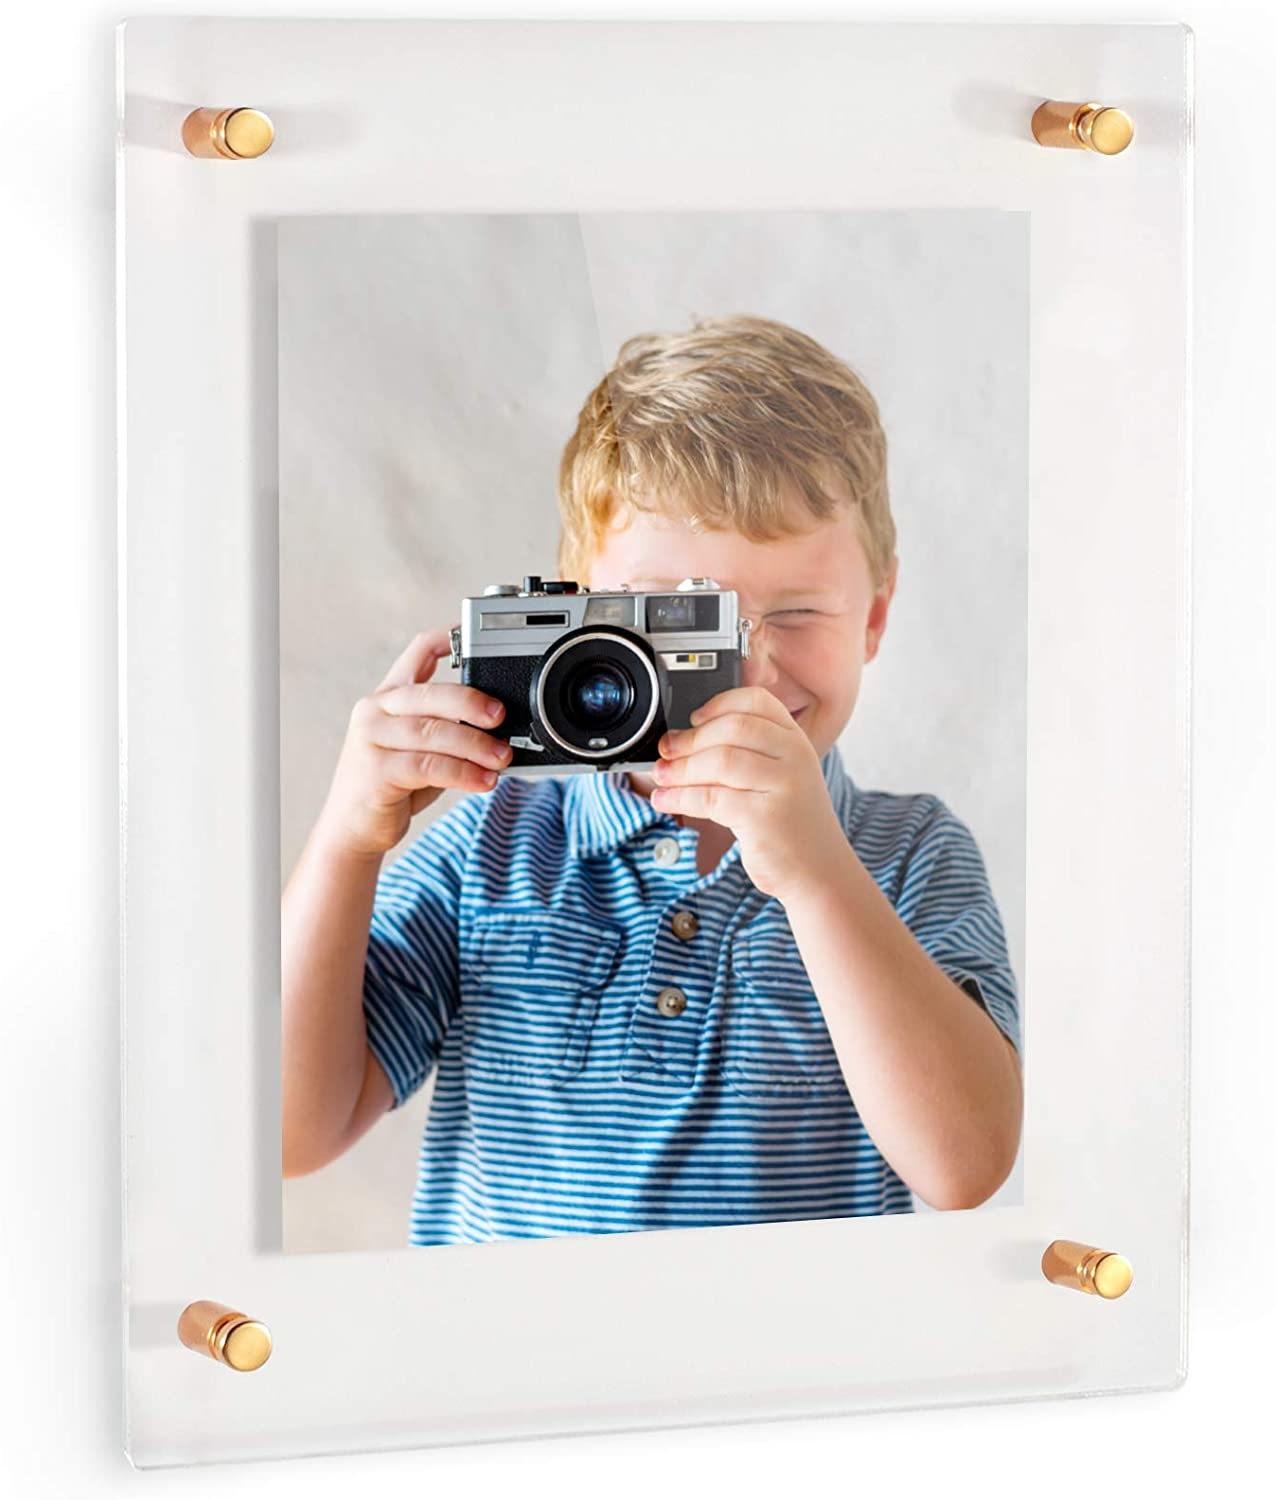 ArtToFrames Floating Acrylic Frame for Pictures Up to 18x24 inches (Full Frame is 22x28) with Gold Standoff Wall Mount Hardware, Acrylic-109-18x24-81